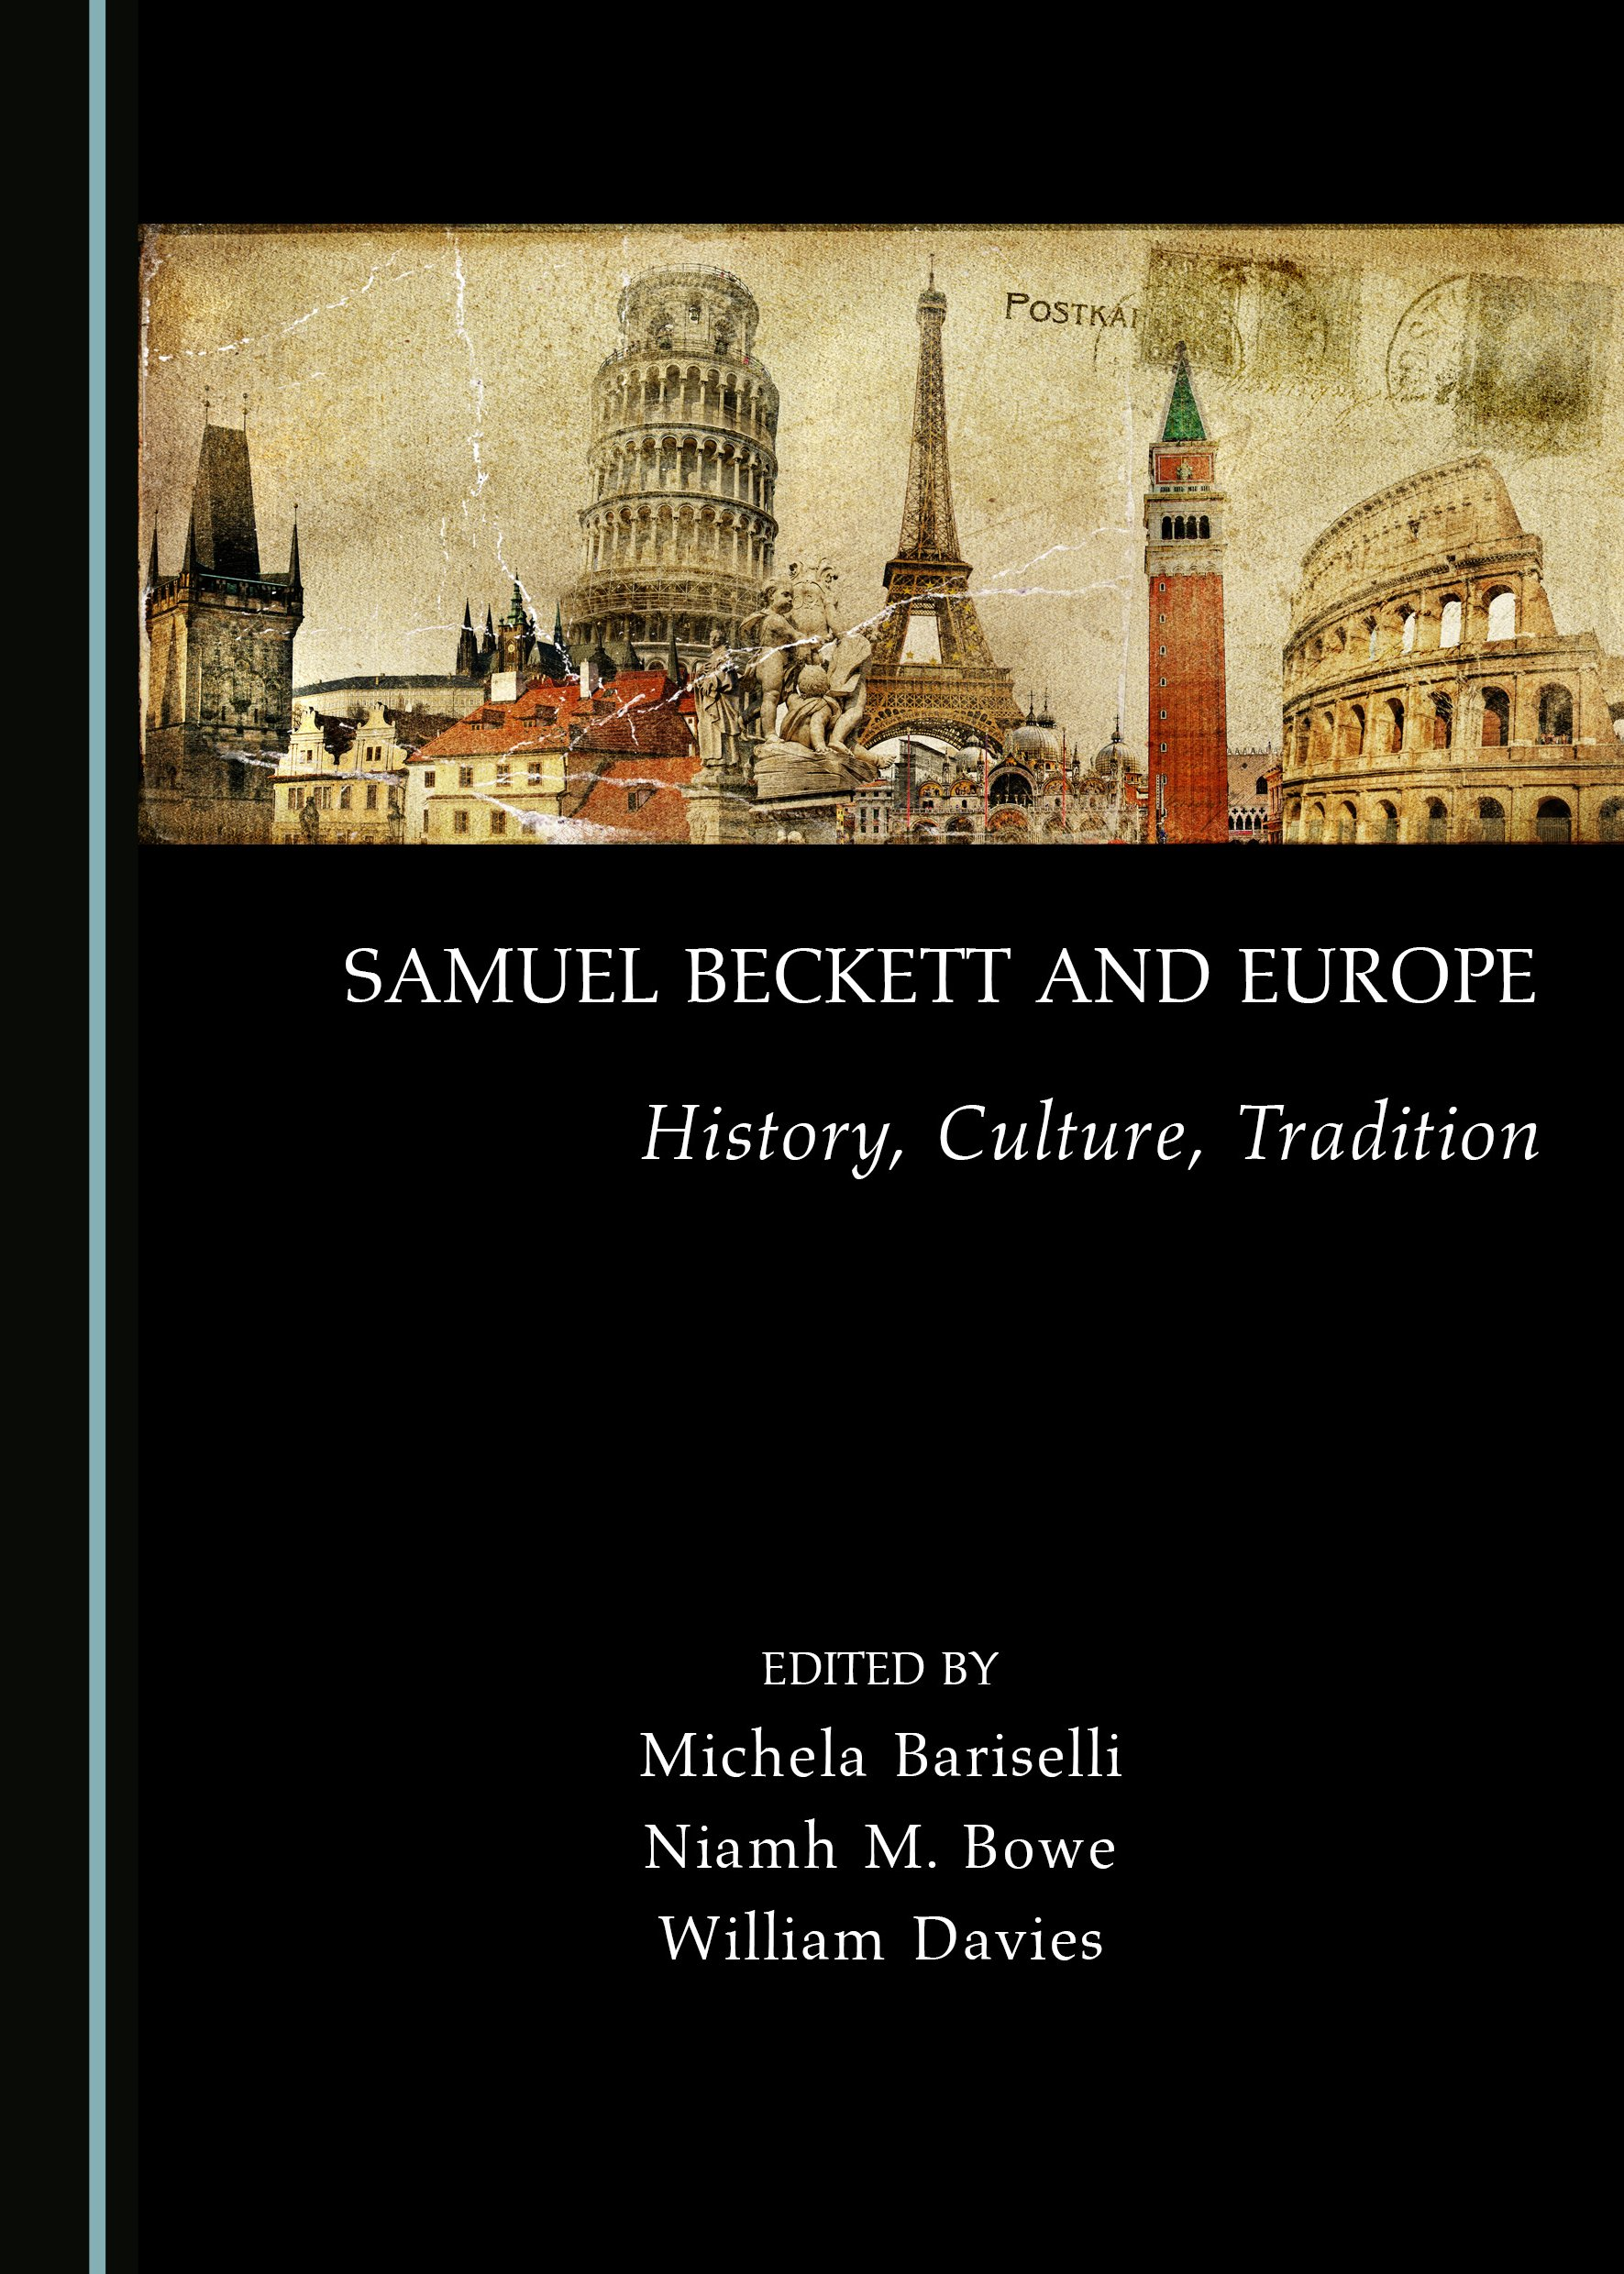 Samuel Beckett and Europe: History, Culture, Tradition